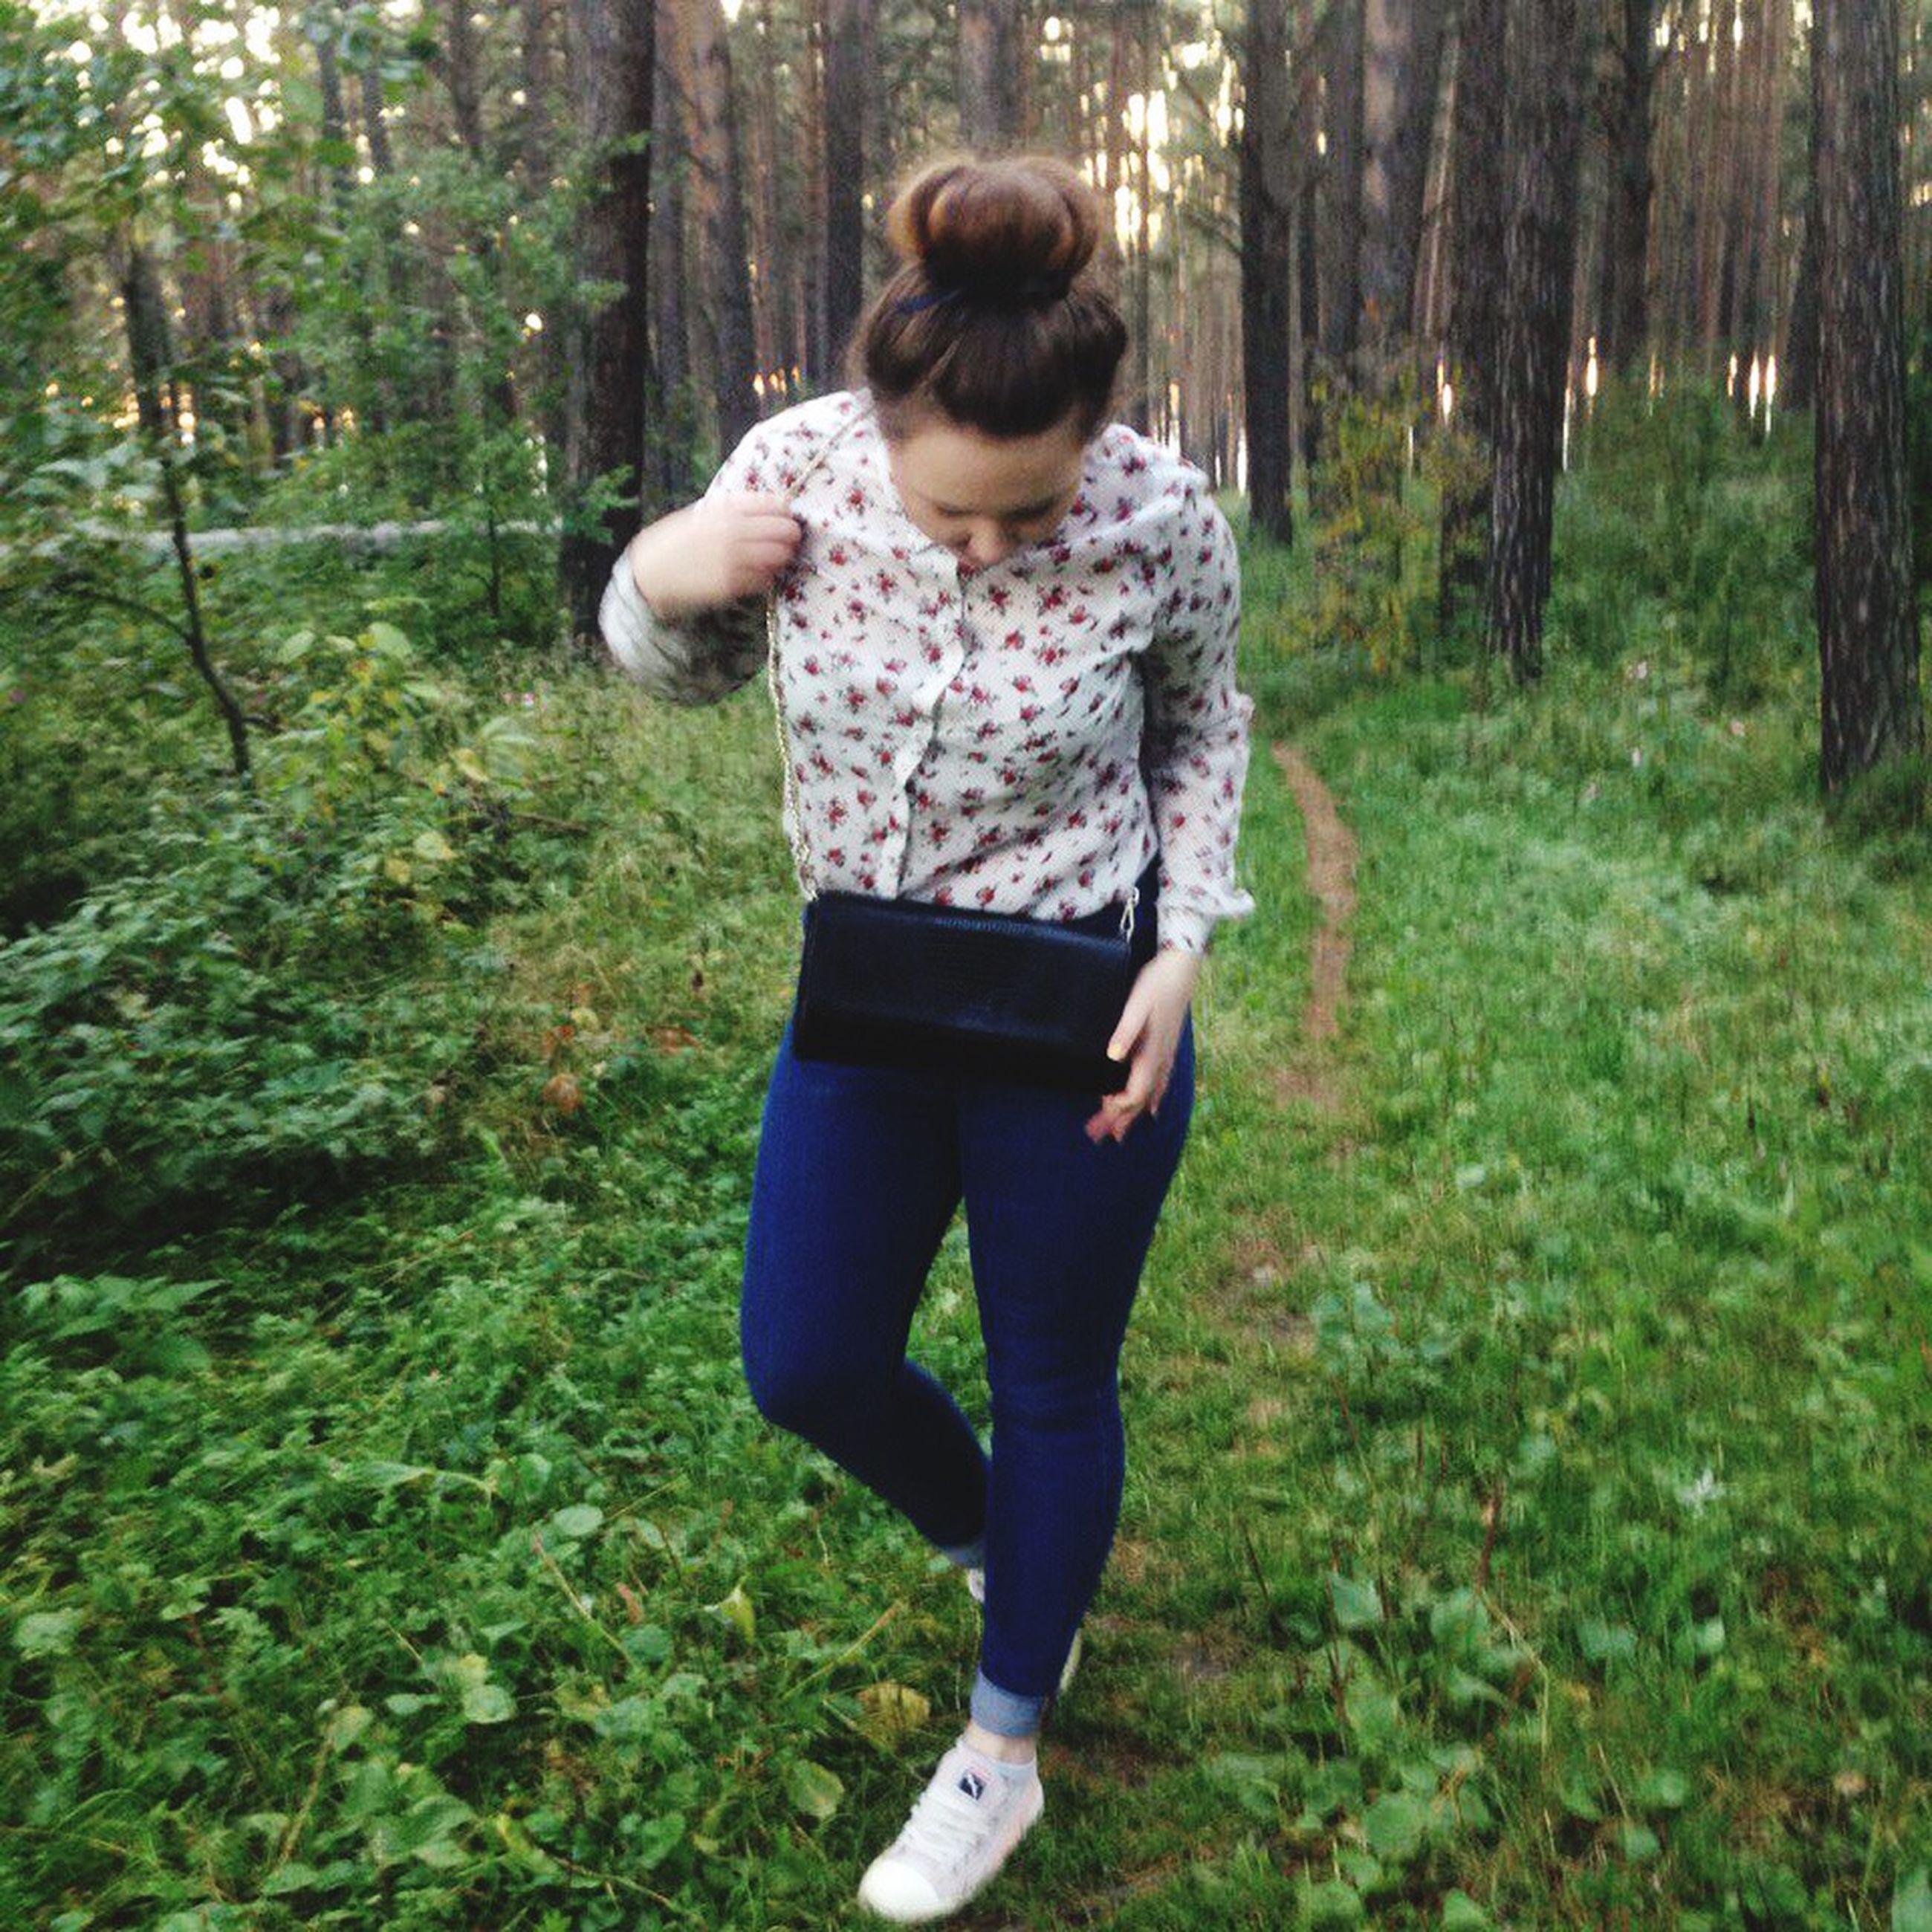 lifestyles, casual clothing, full length, tree, leisure activity, grass, person, standing, young adult, growth, childhood, field, rear view, front view, three quarter length, forest, green color, young women